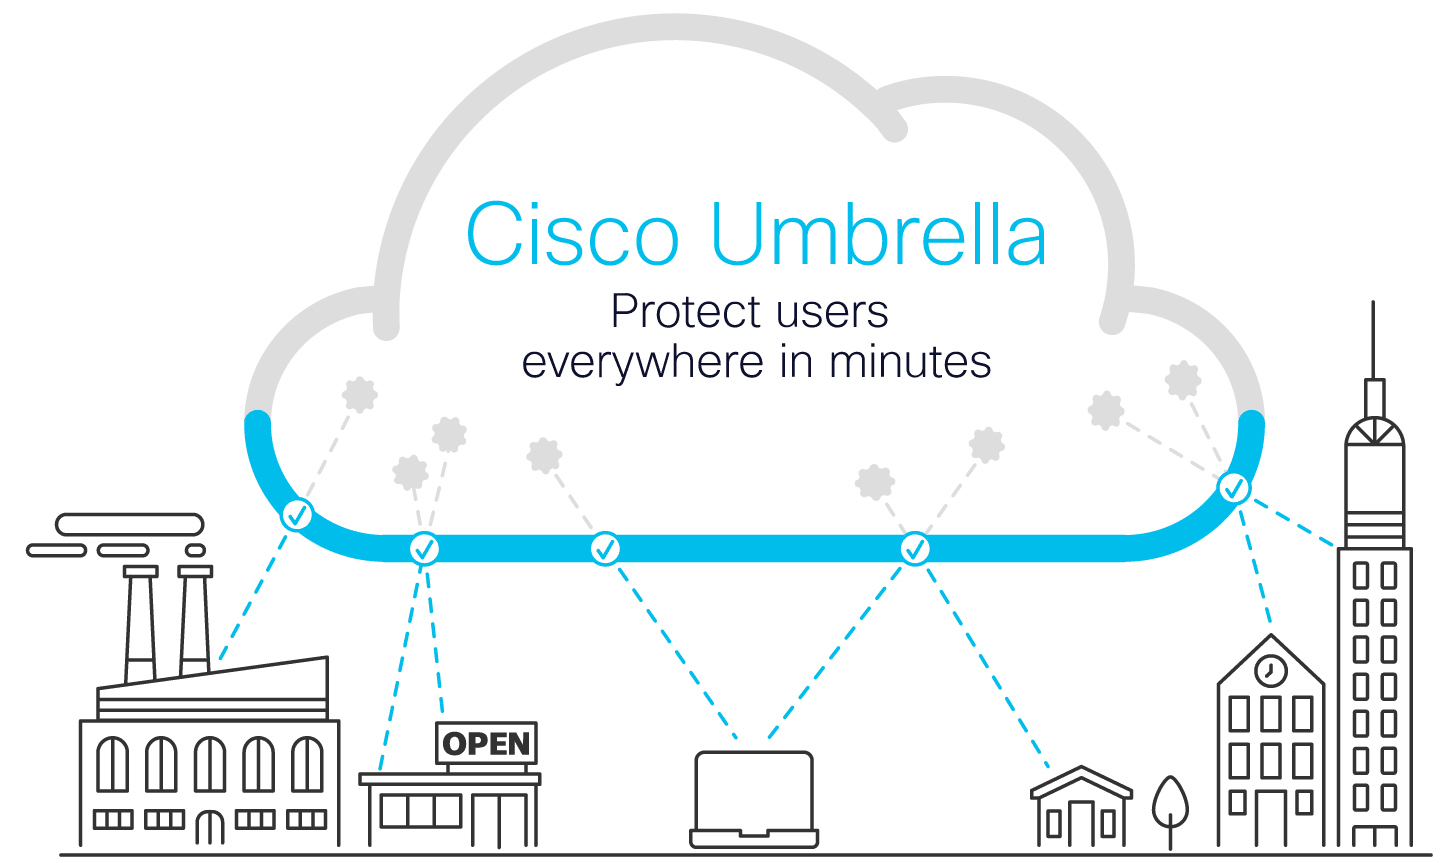 Protect users everywhere withCisco Umbrella illustration